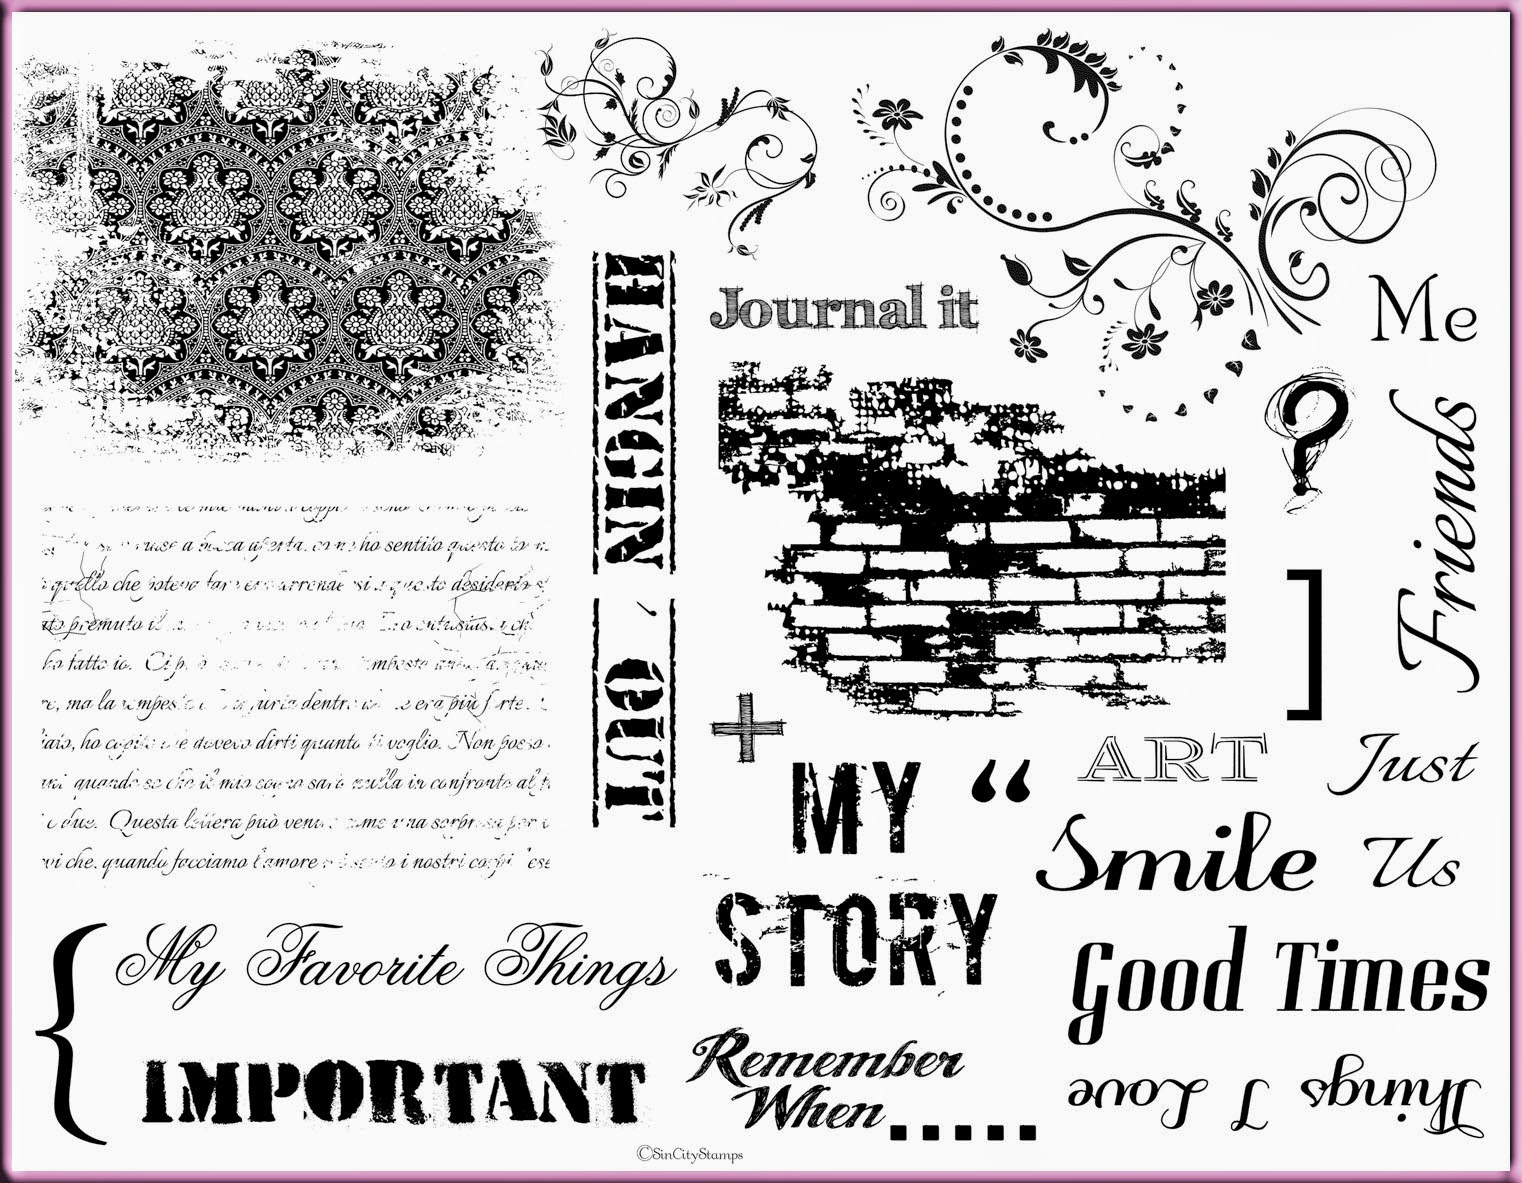 http://www.sincitystamps.com/index.php/art-rubber-stamps-2013-11-27/art-journal-rubber-stamps/art-journaling-with-terri-sproul-2-detail